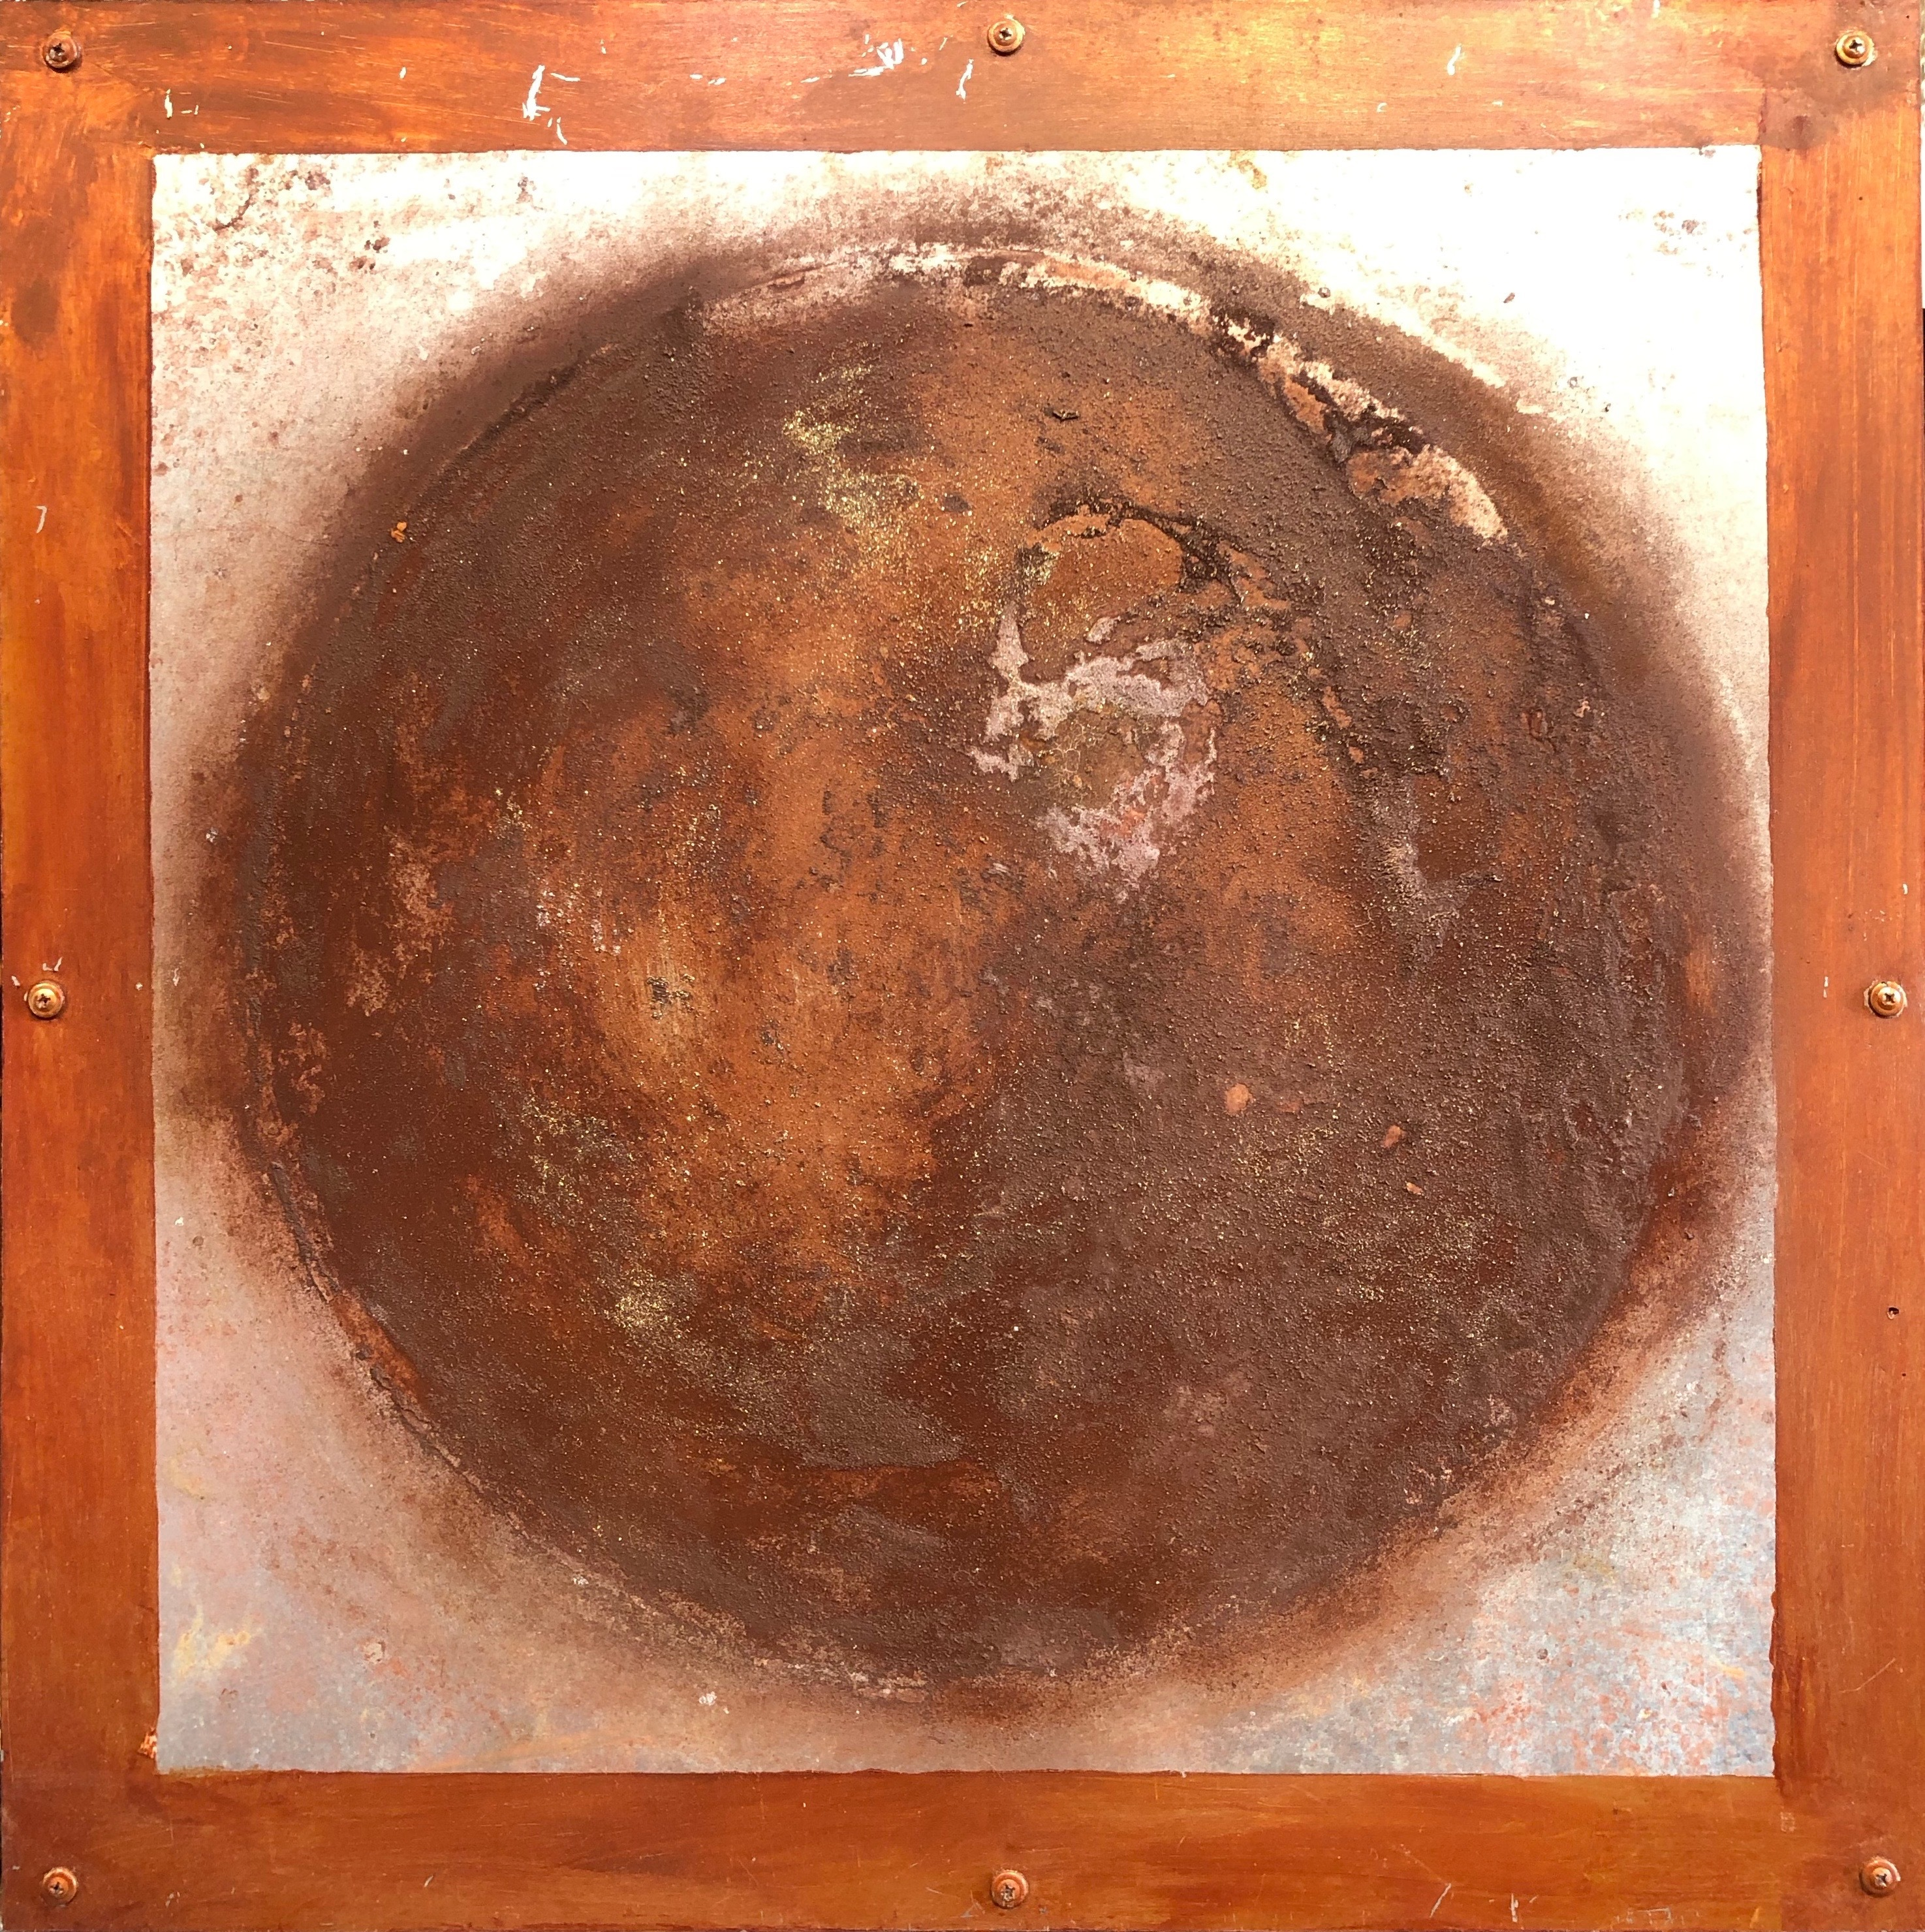 Planetary series 103 24x24 oil and rust on steel over wood sfrhch